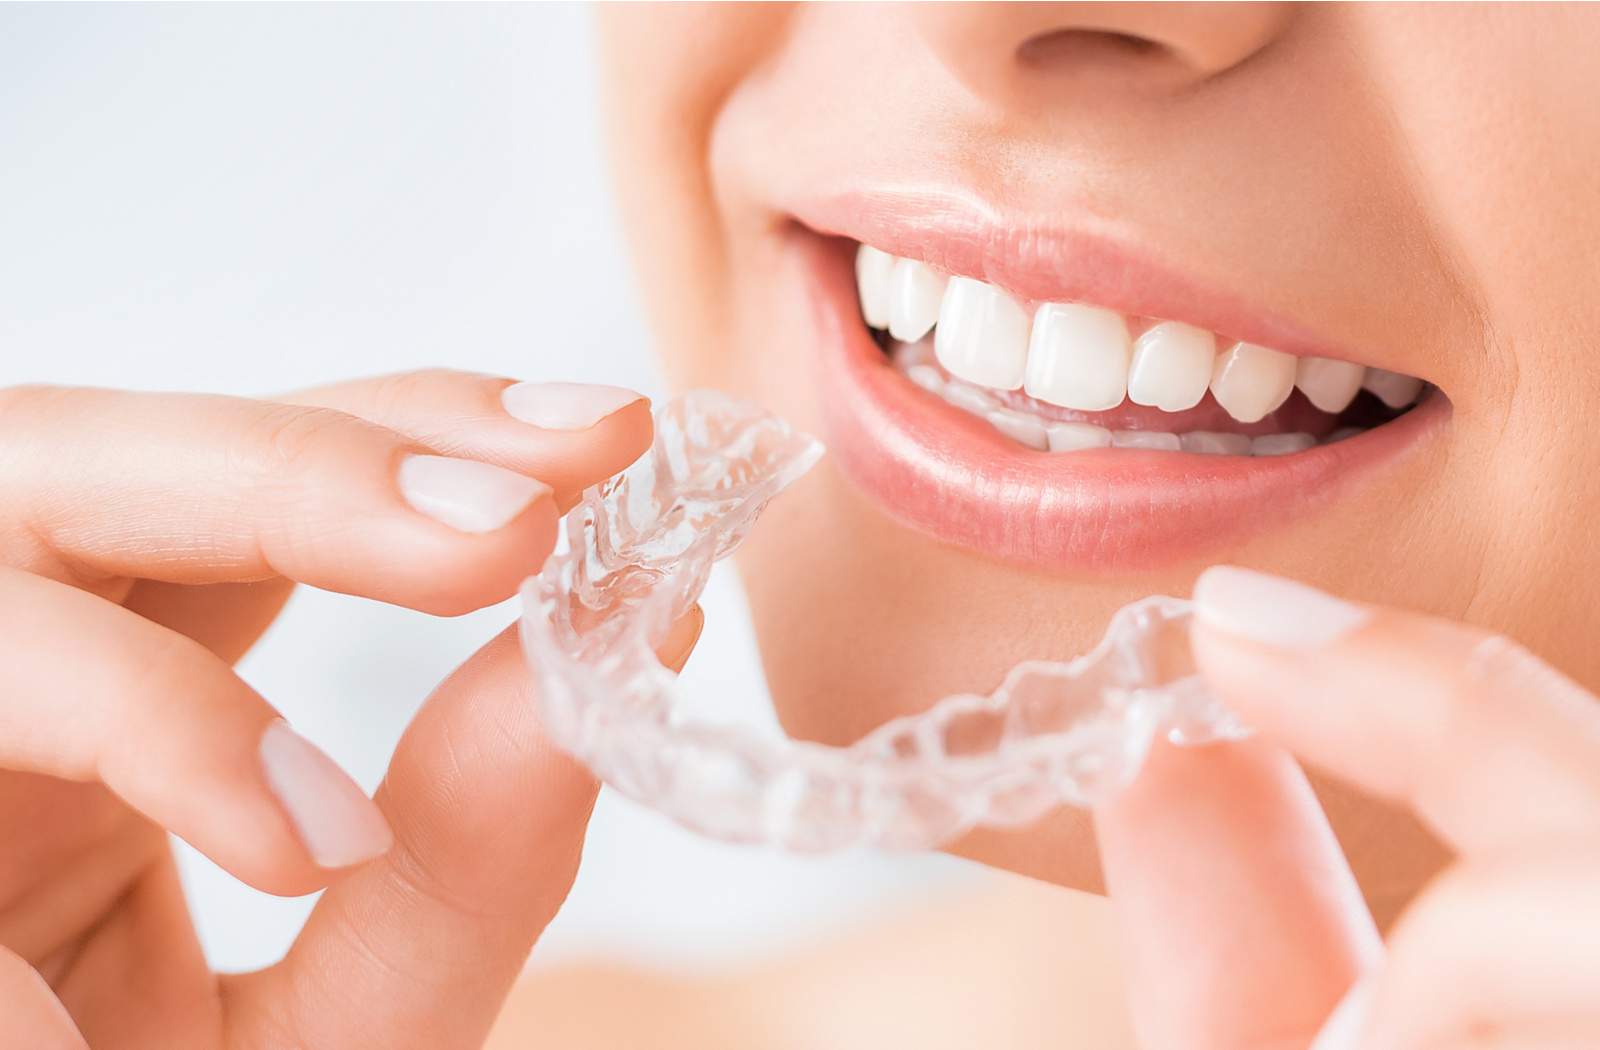 woman smiling holding Invisalign aligner about to put them in her mouth